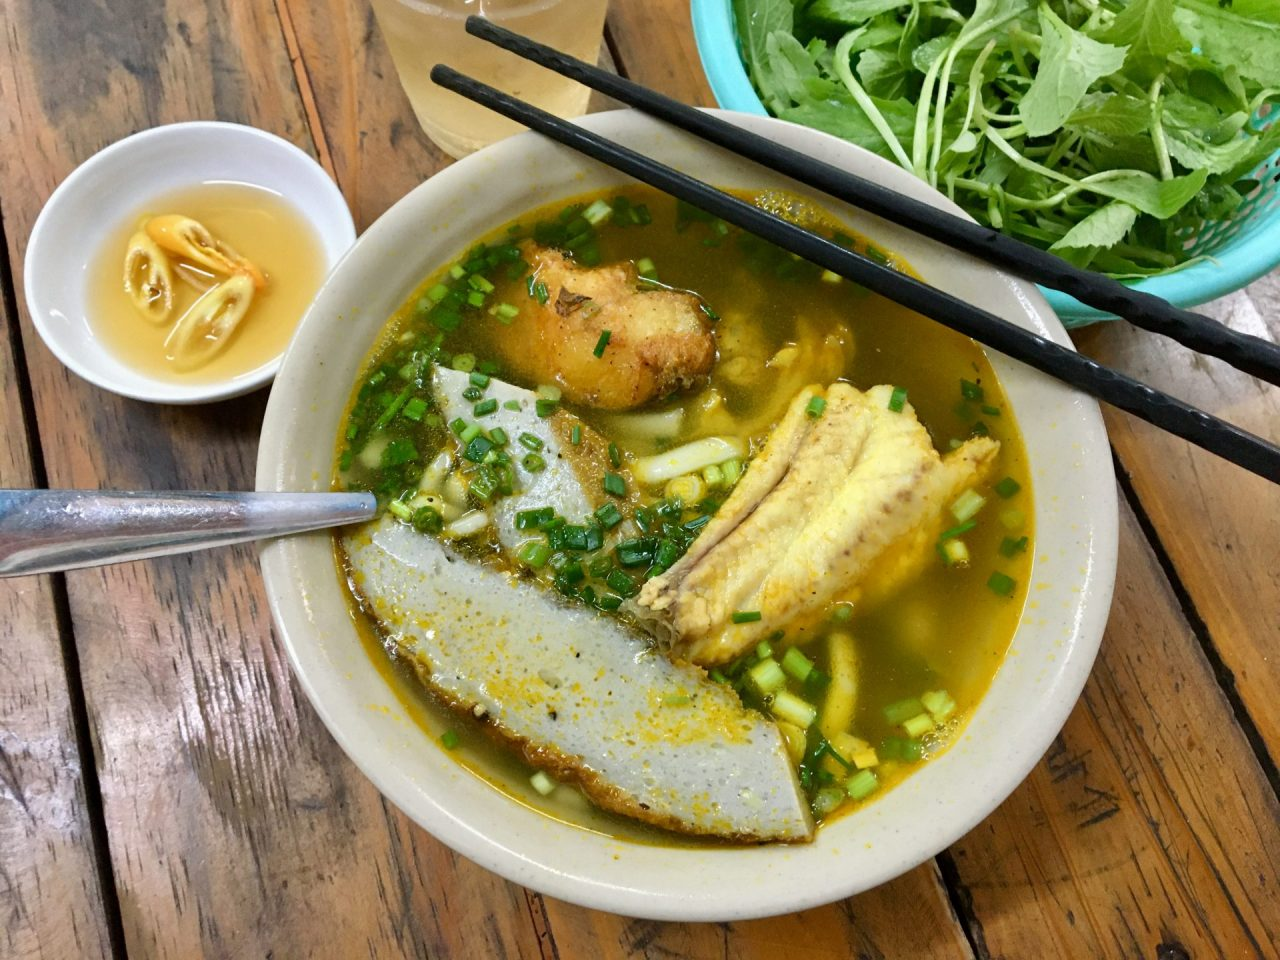 Bánh Canh Chả Cá Hấp and Chiên - Thick Rice Noodle Soup with Steamed and Fried Fish + Fish Cake